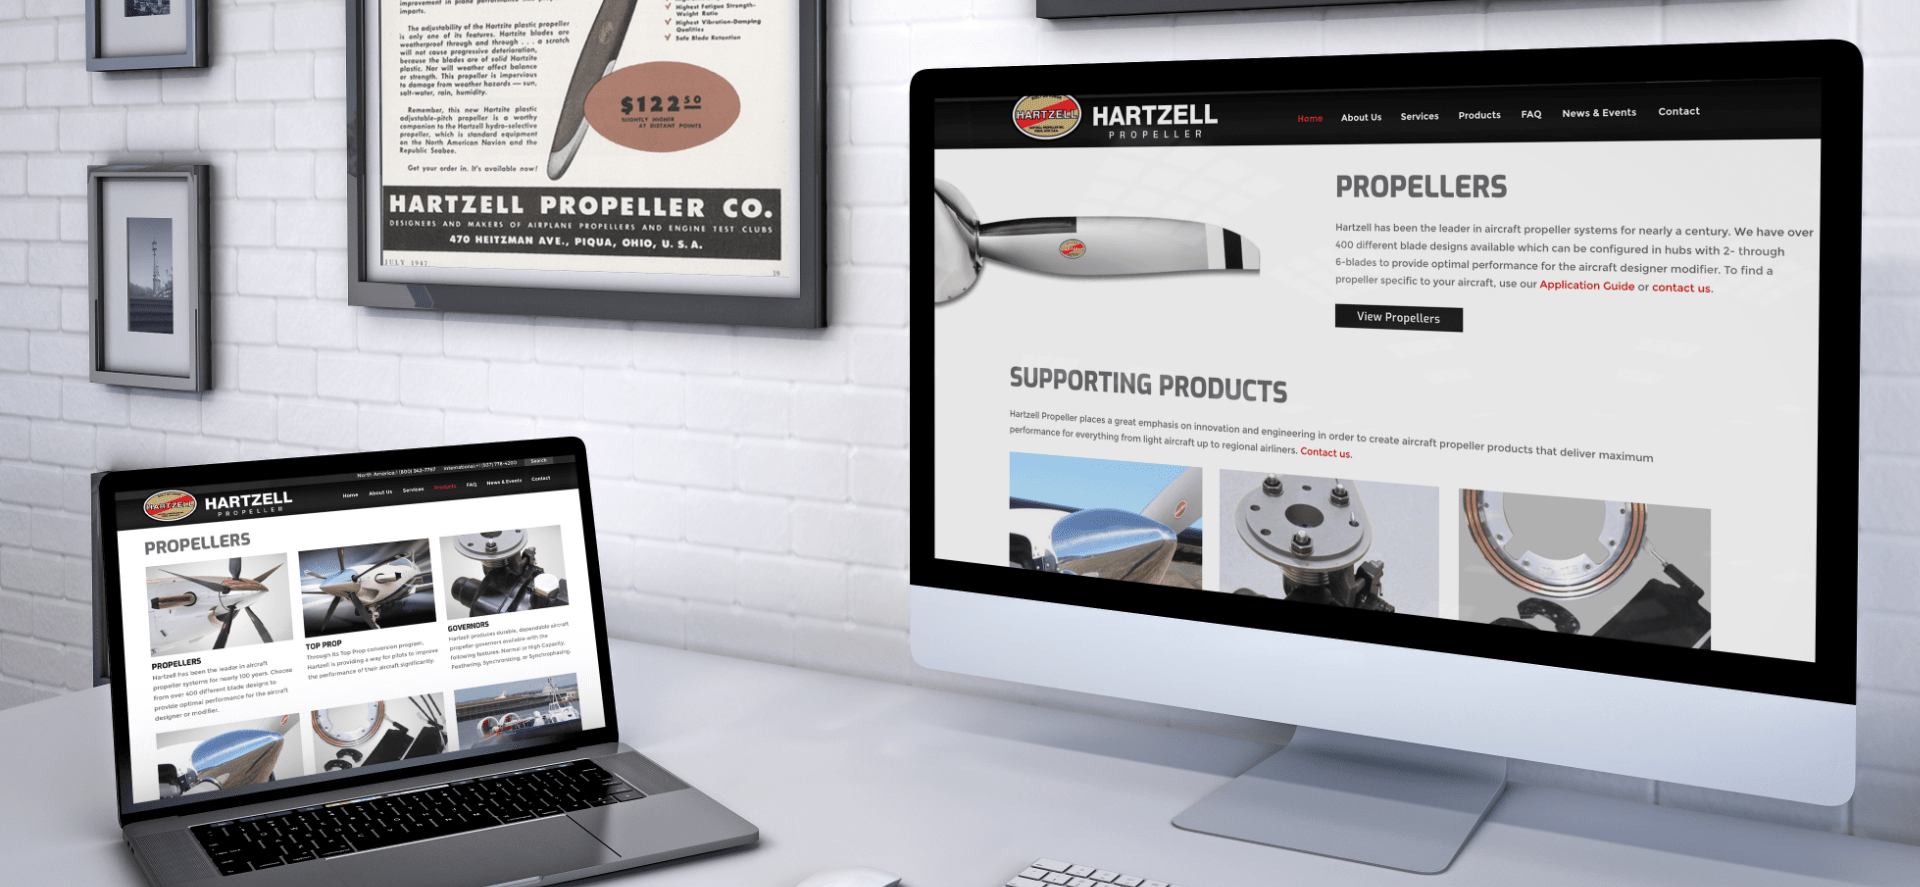 Montage of Hartzell Propeller Advertising and Marketing materials